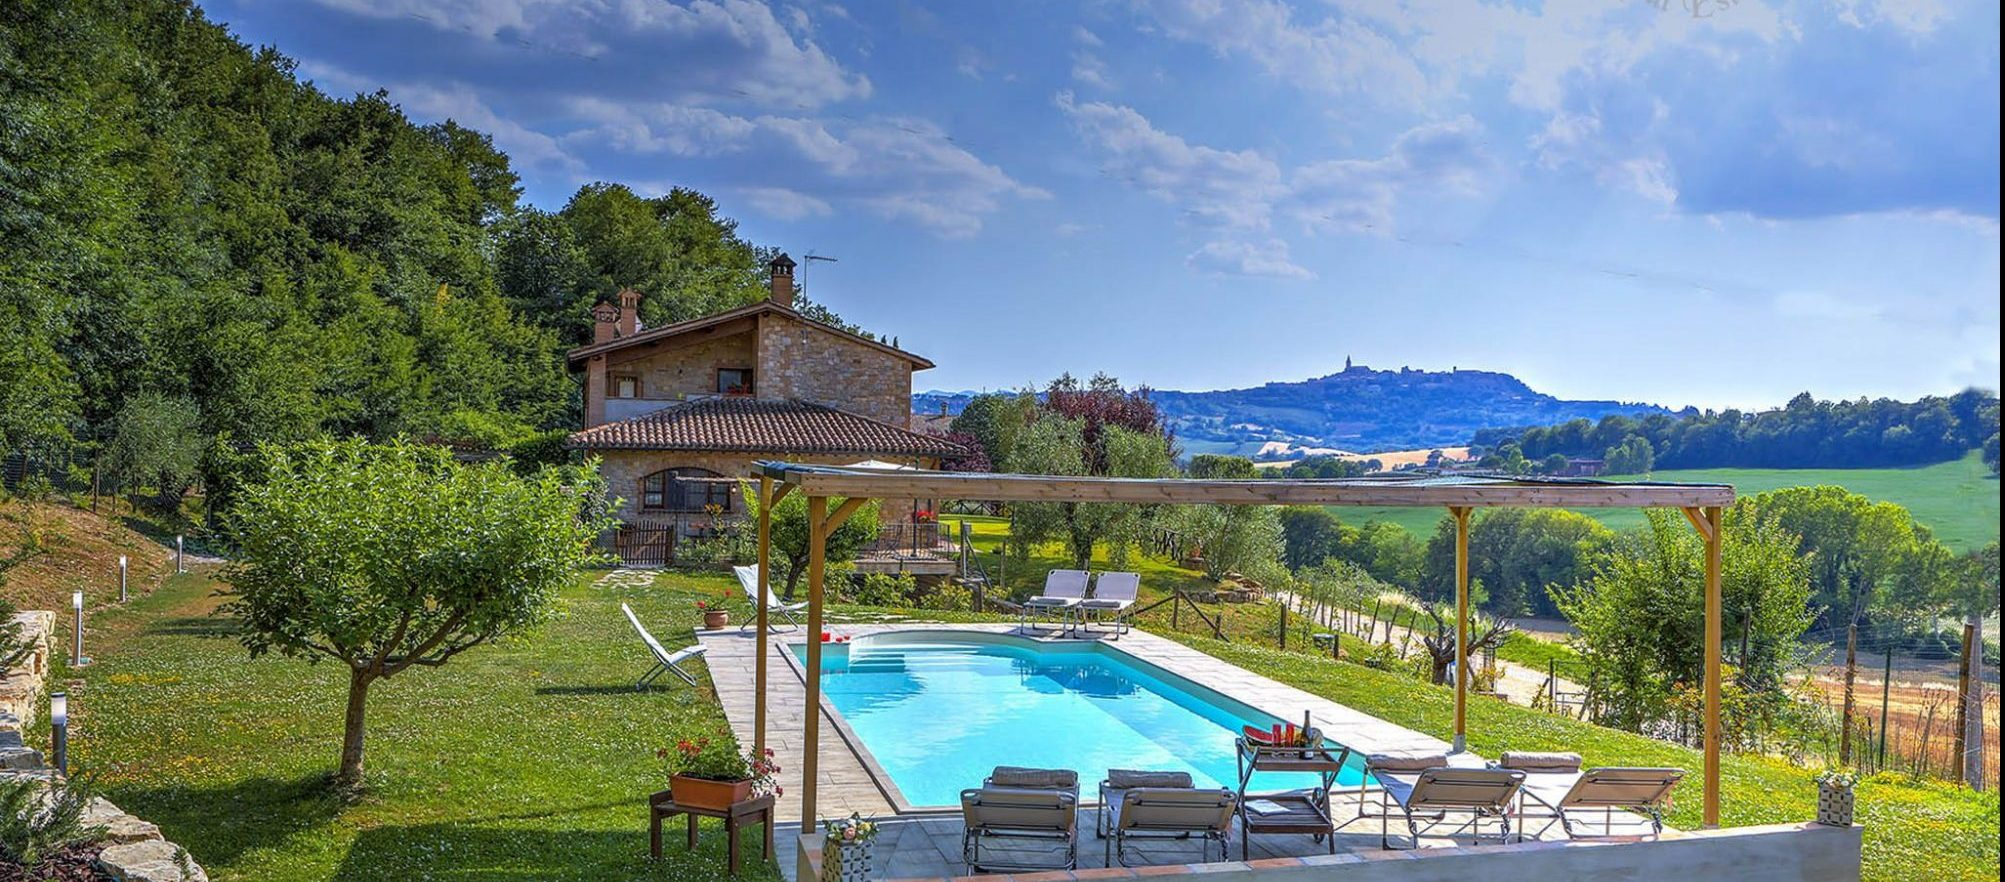 626 – Farmhouse with a beautiful view of Todi